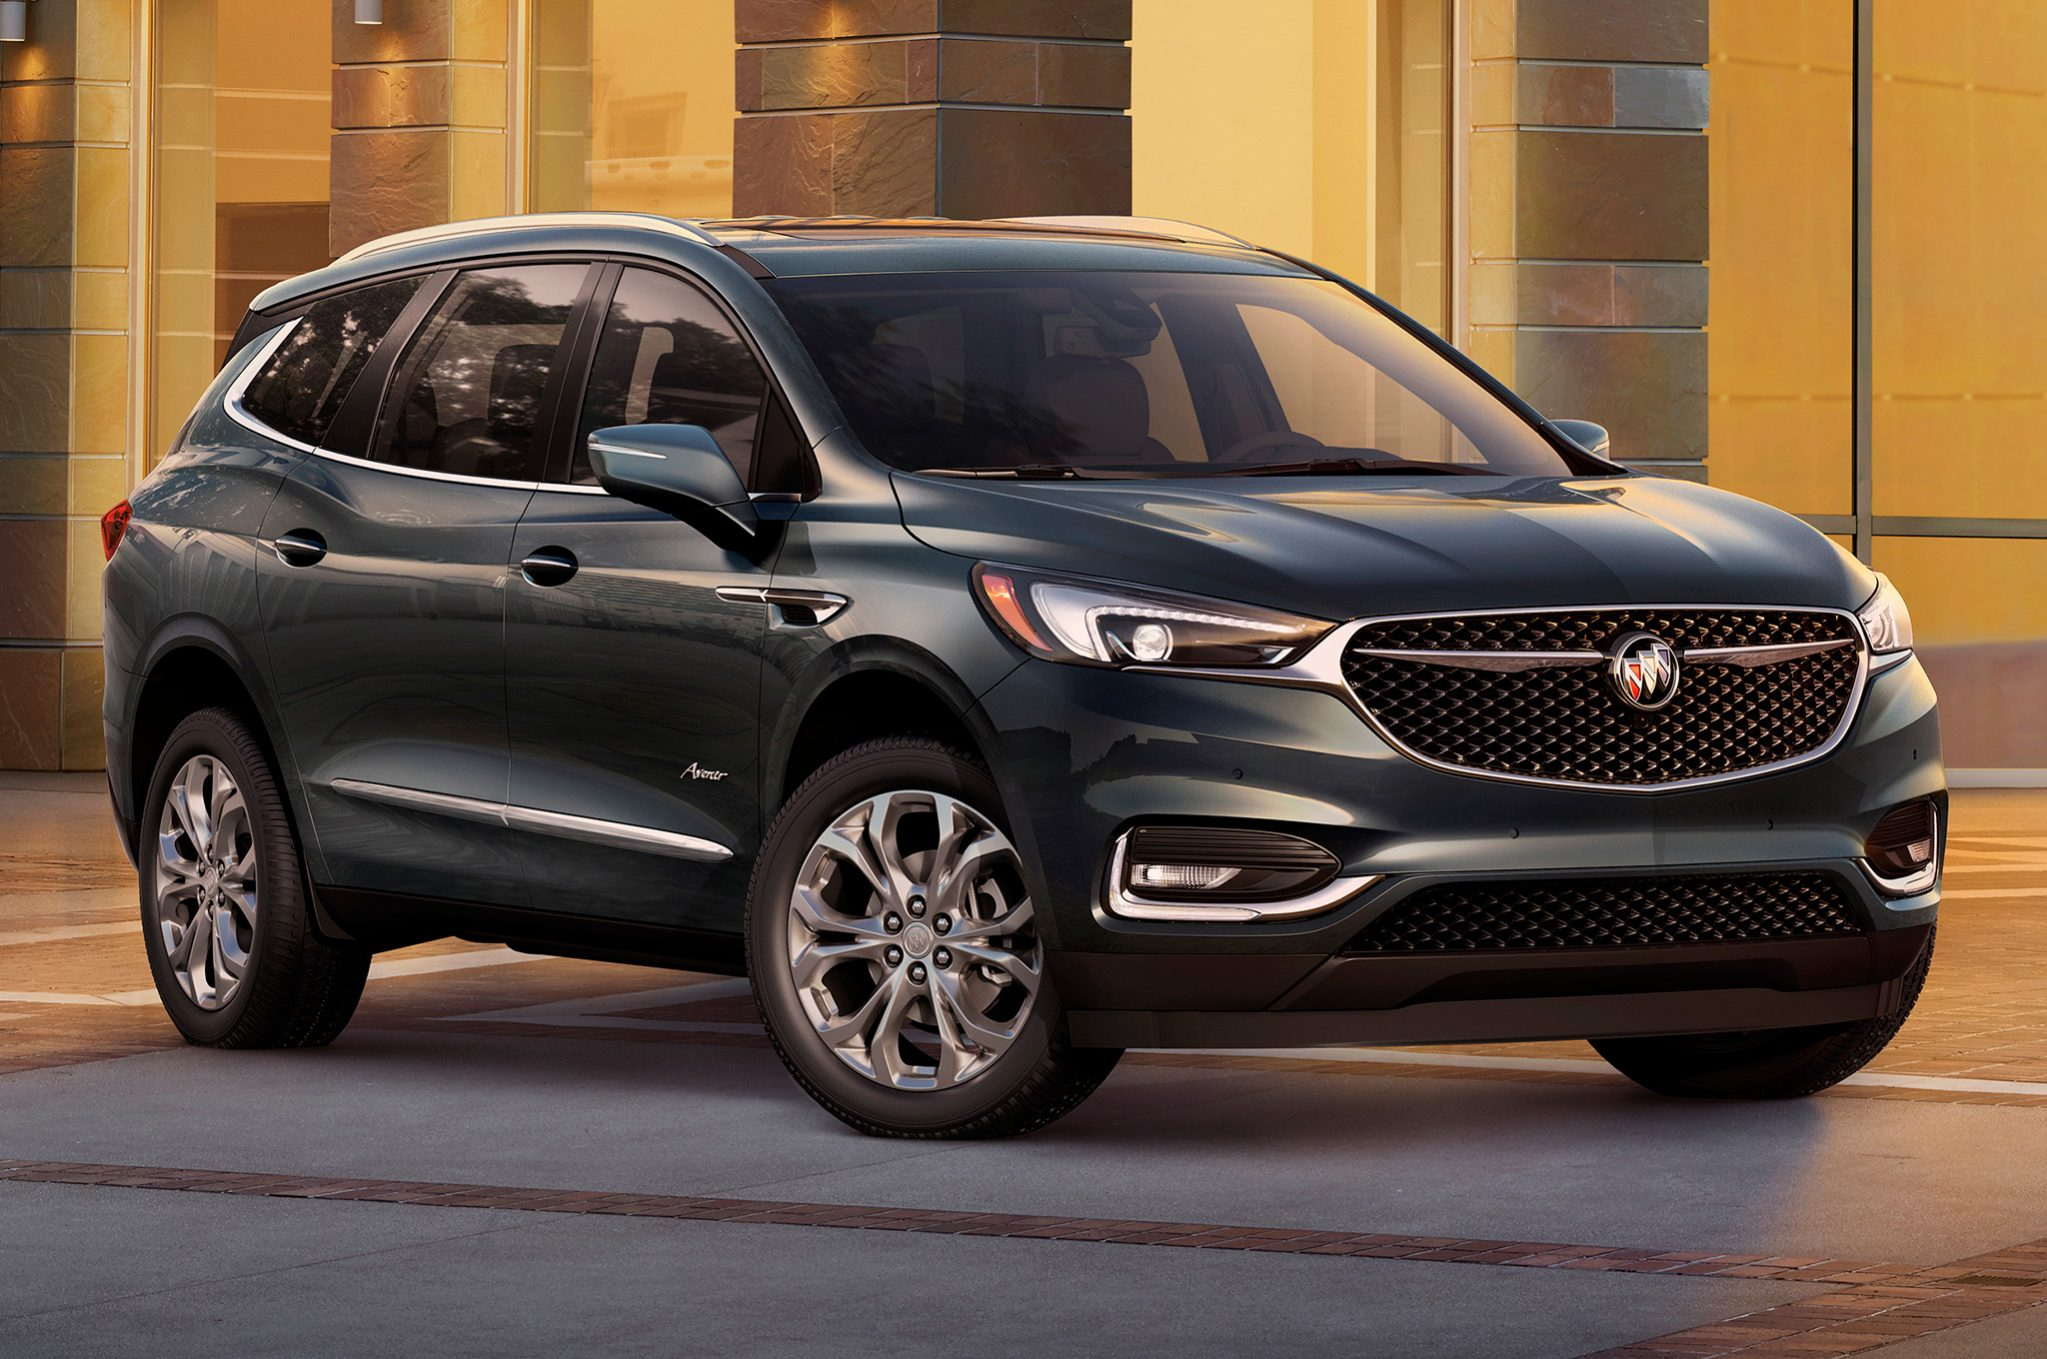 2019 Buick Enclave - Leasetechs Florida Auto Leasing Brokers 2022 Buick Enclave Interior Colors, Heads Up Display, Incentives